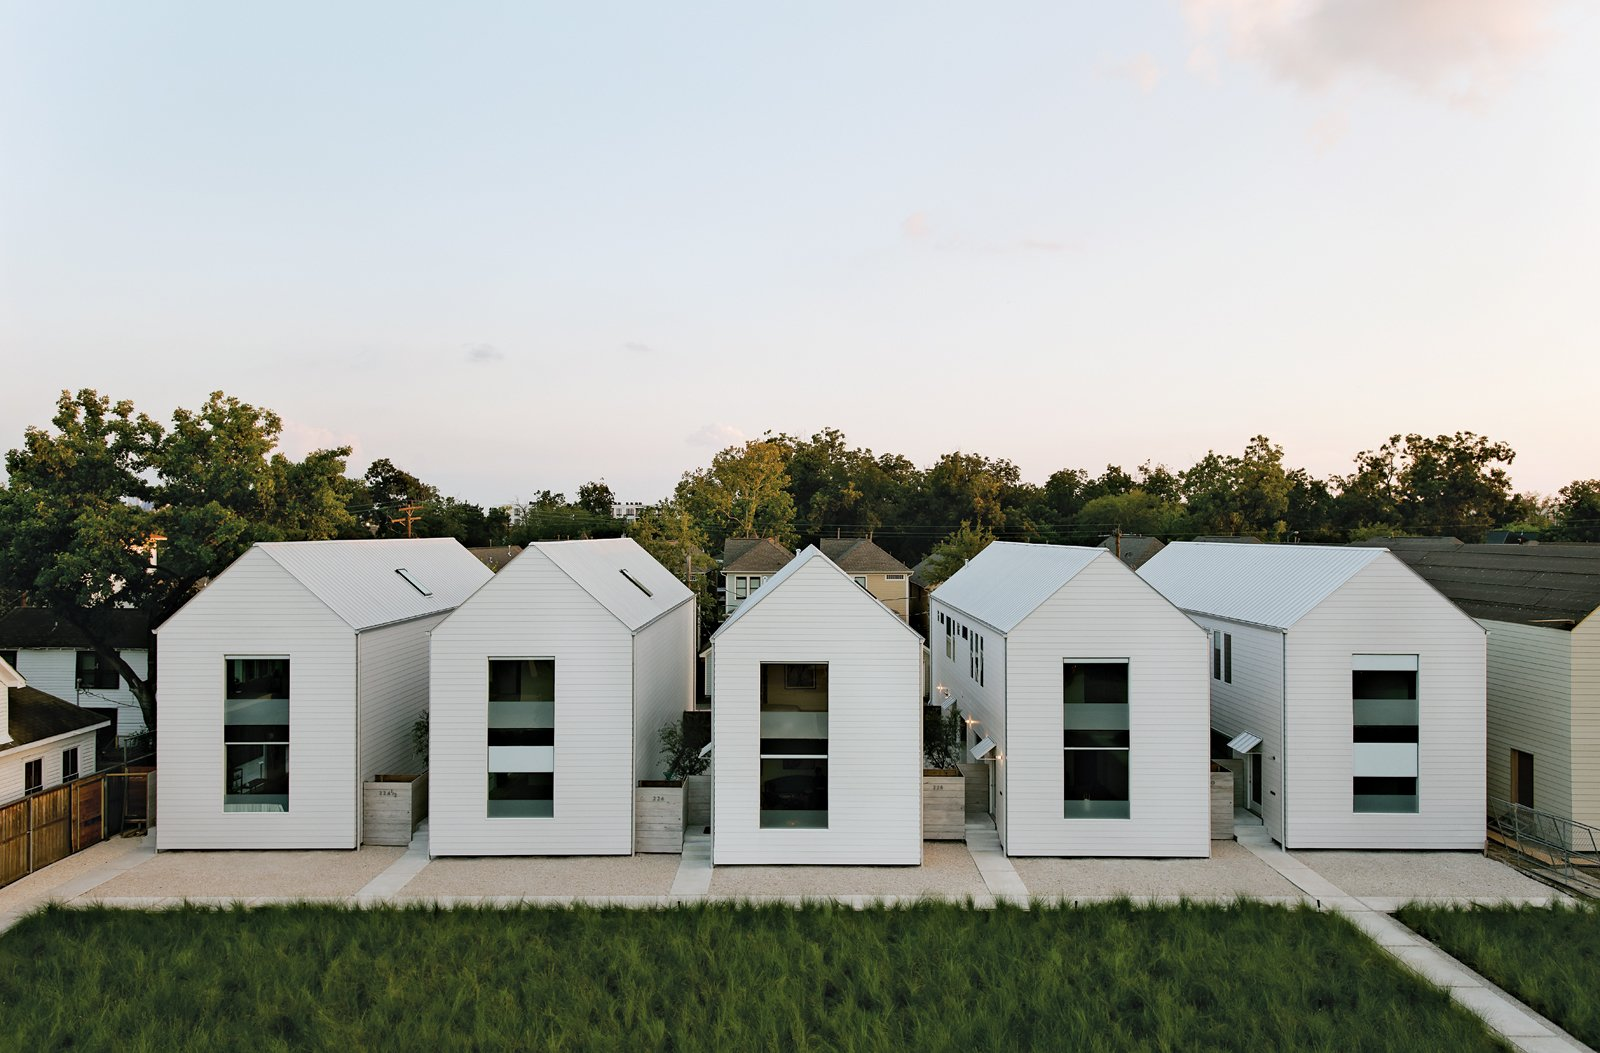 Articles about row 25th affordable housing development houston on Dwell.com